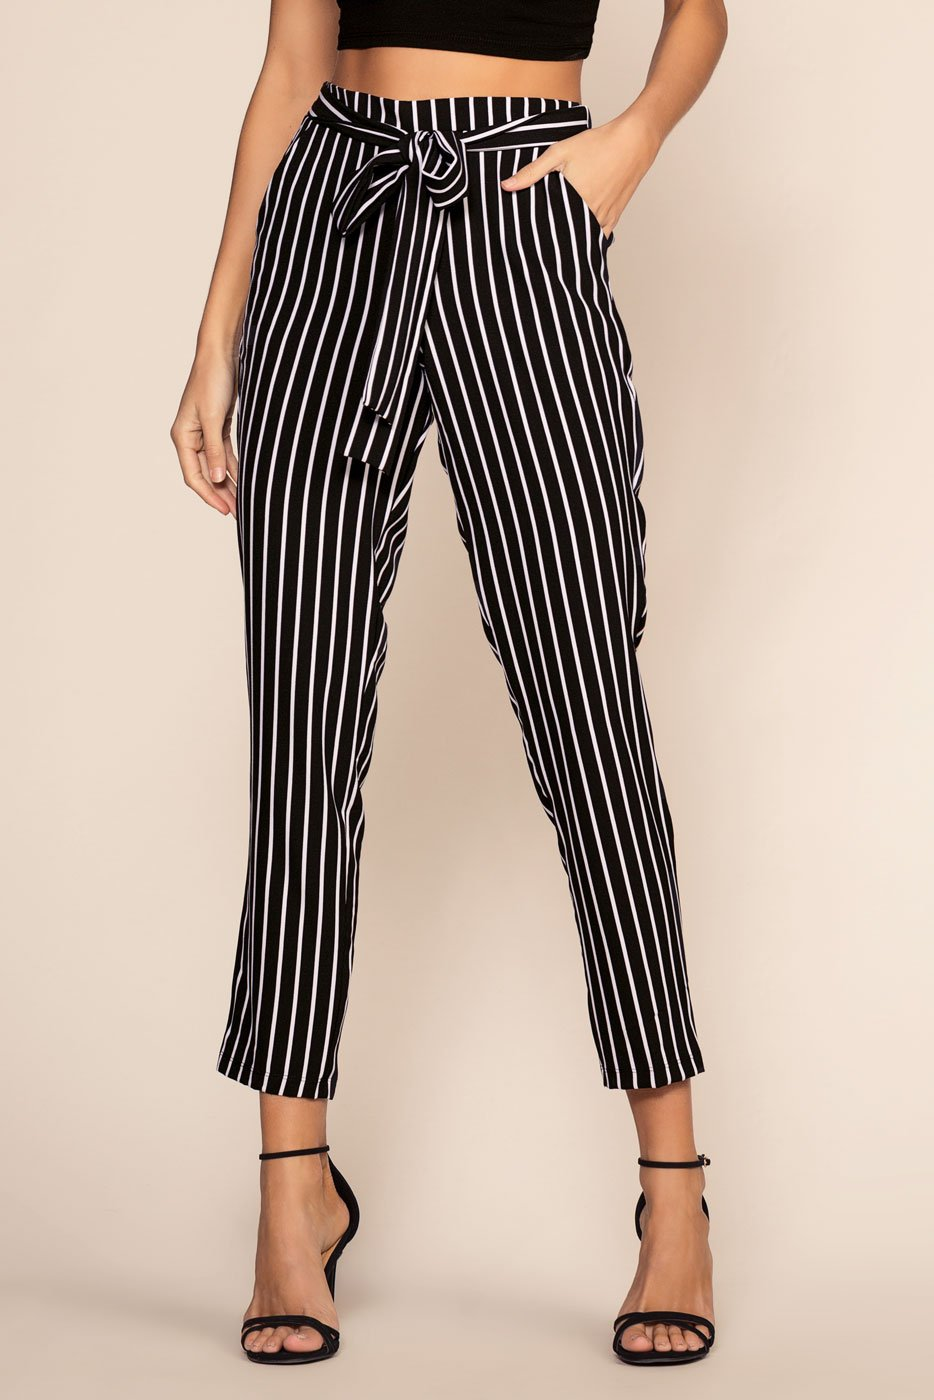 Pants - Elsbeth Stripe Highwaist Crop Pants - Black